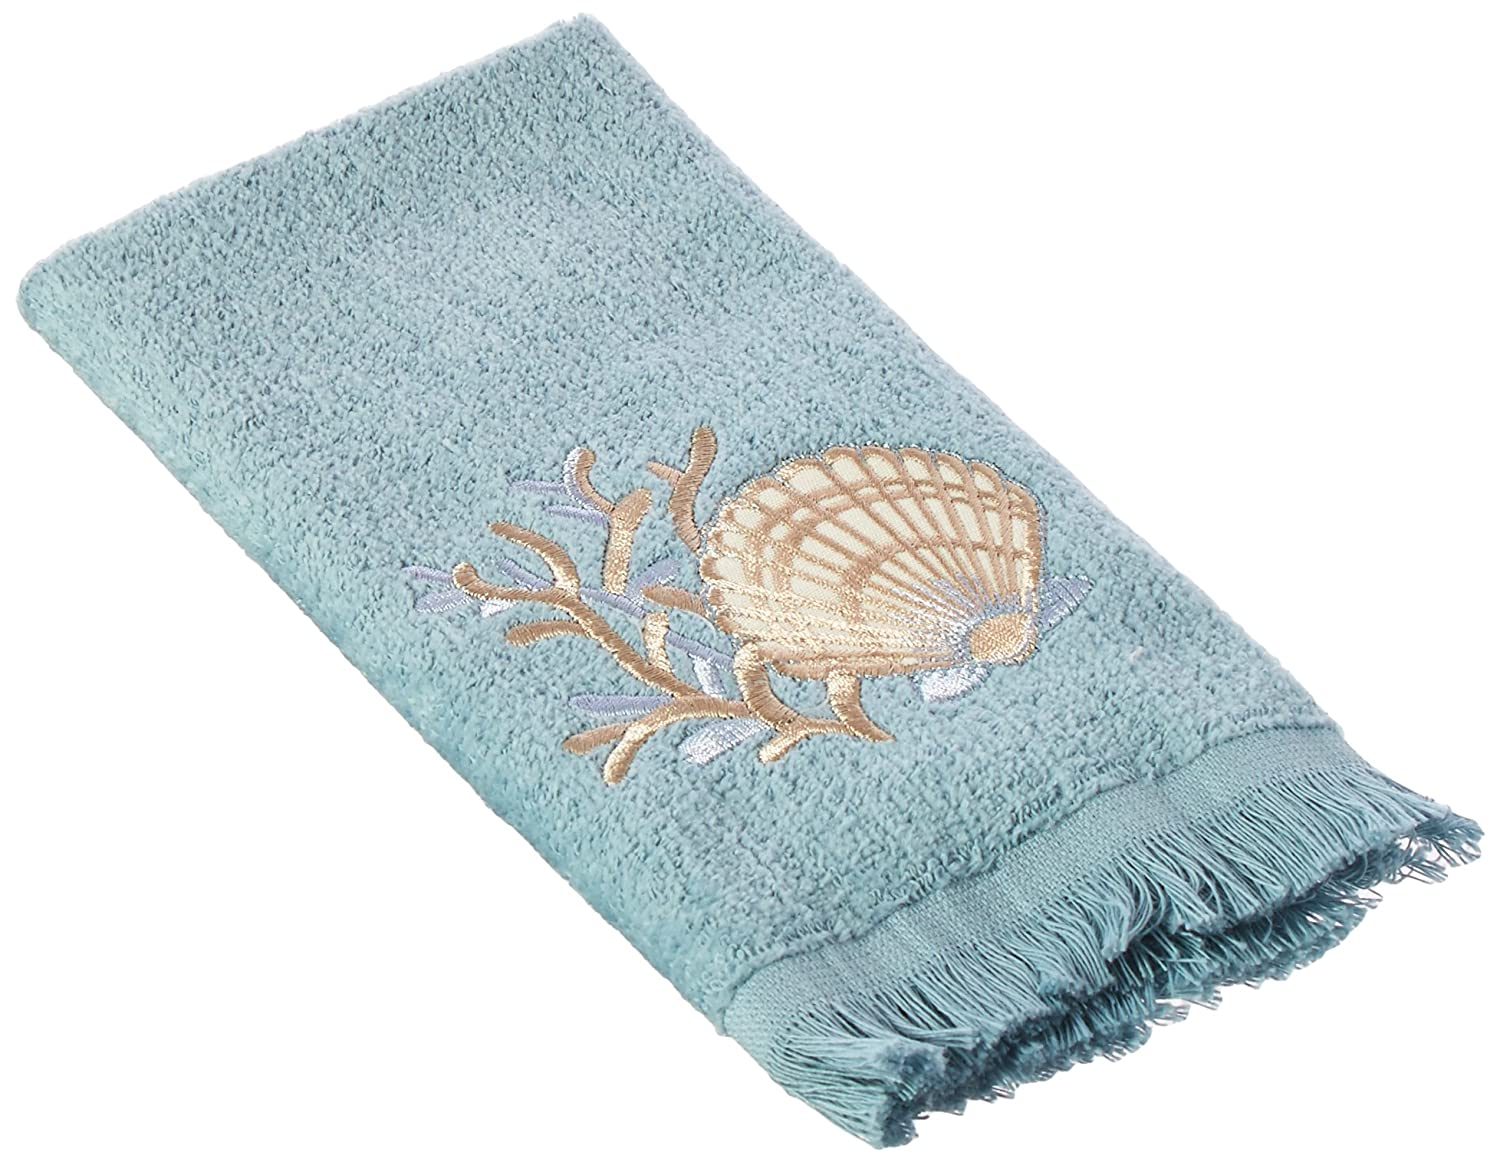 Avanti Linens 019684MIN Sand Shells Finger Towel, Medium, Mineral